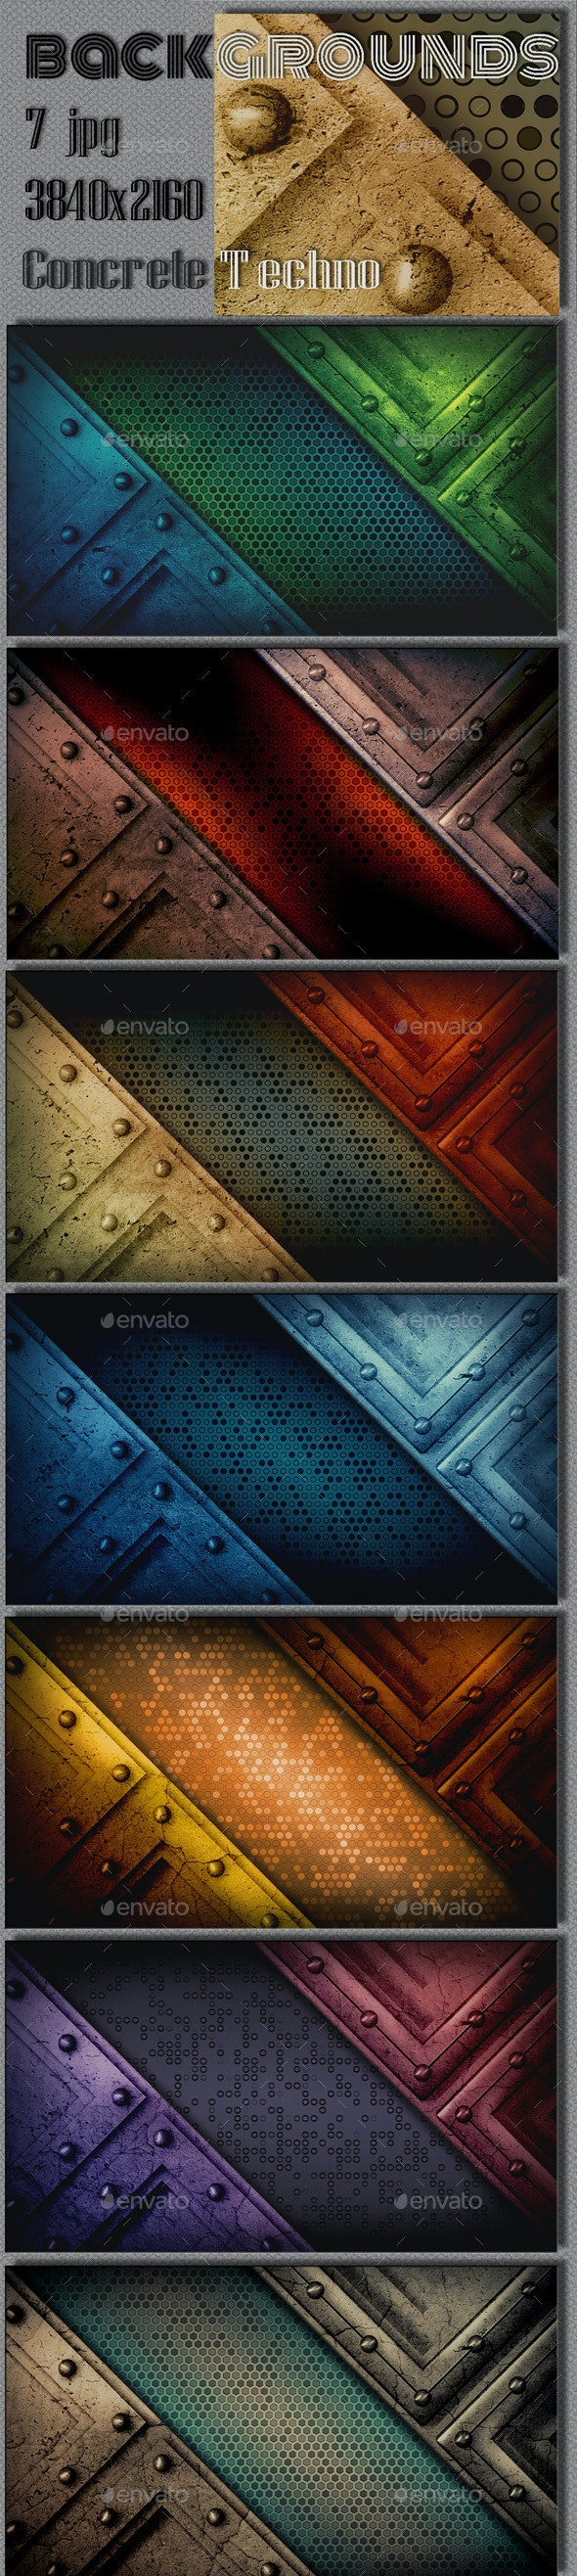 Concrete Techno Wall Background - Urban Backgrounds